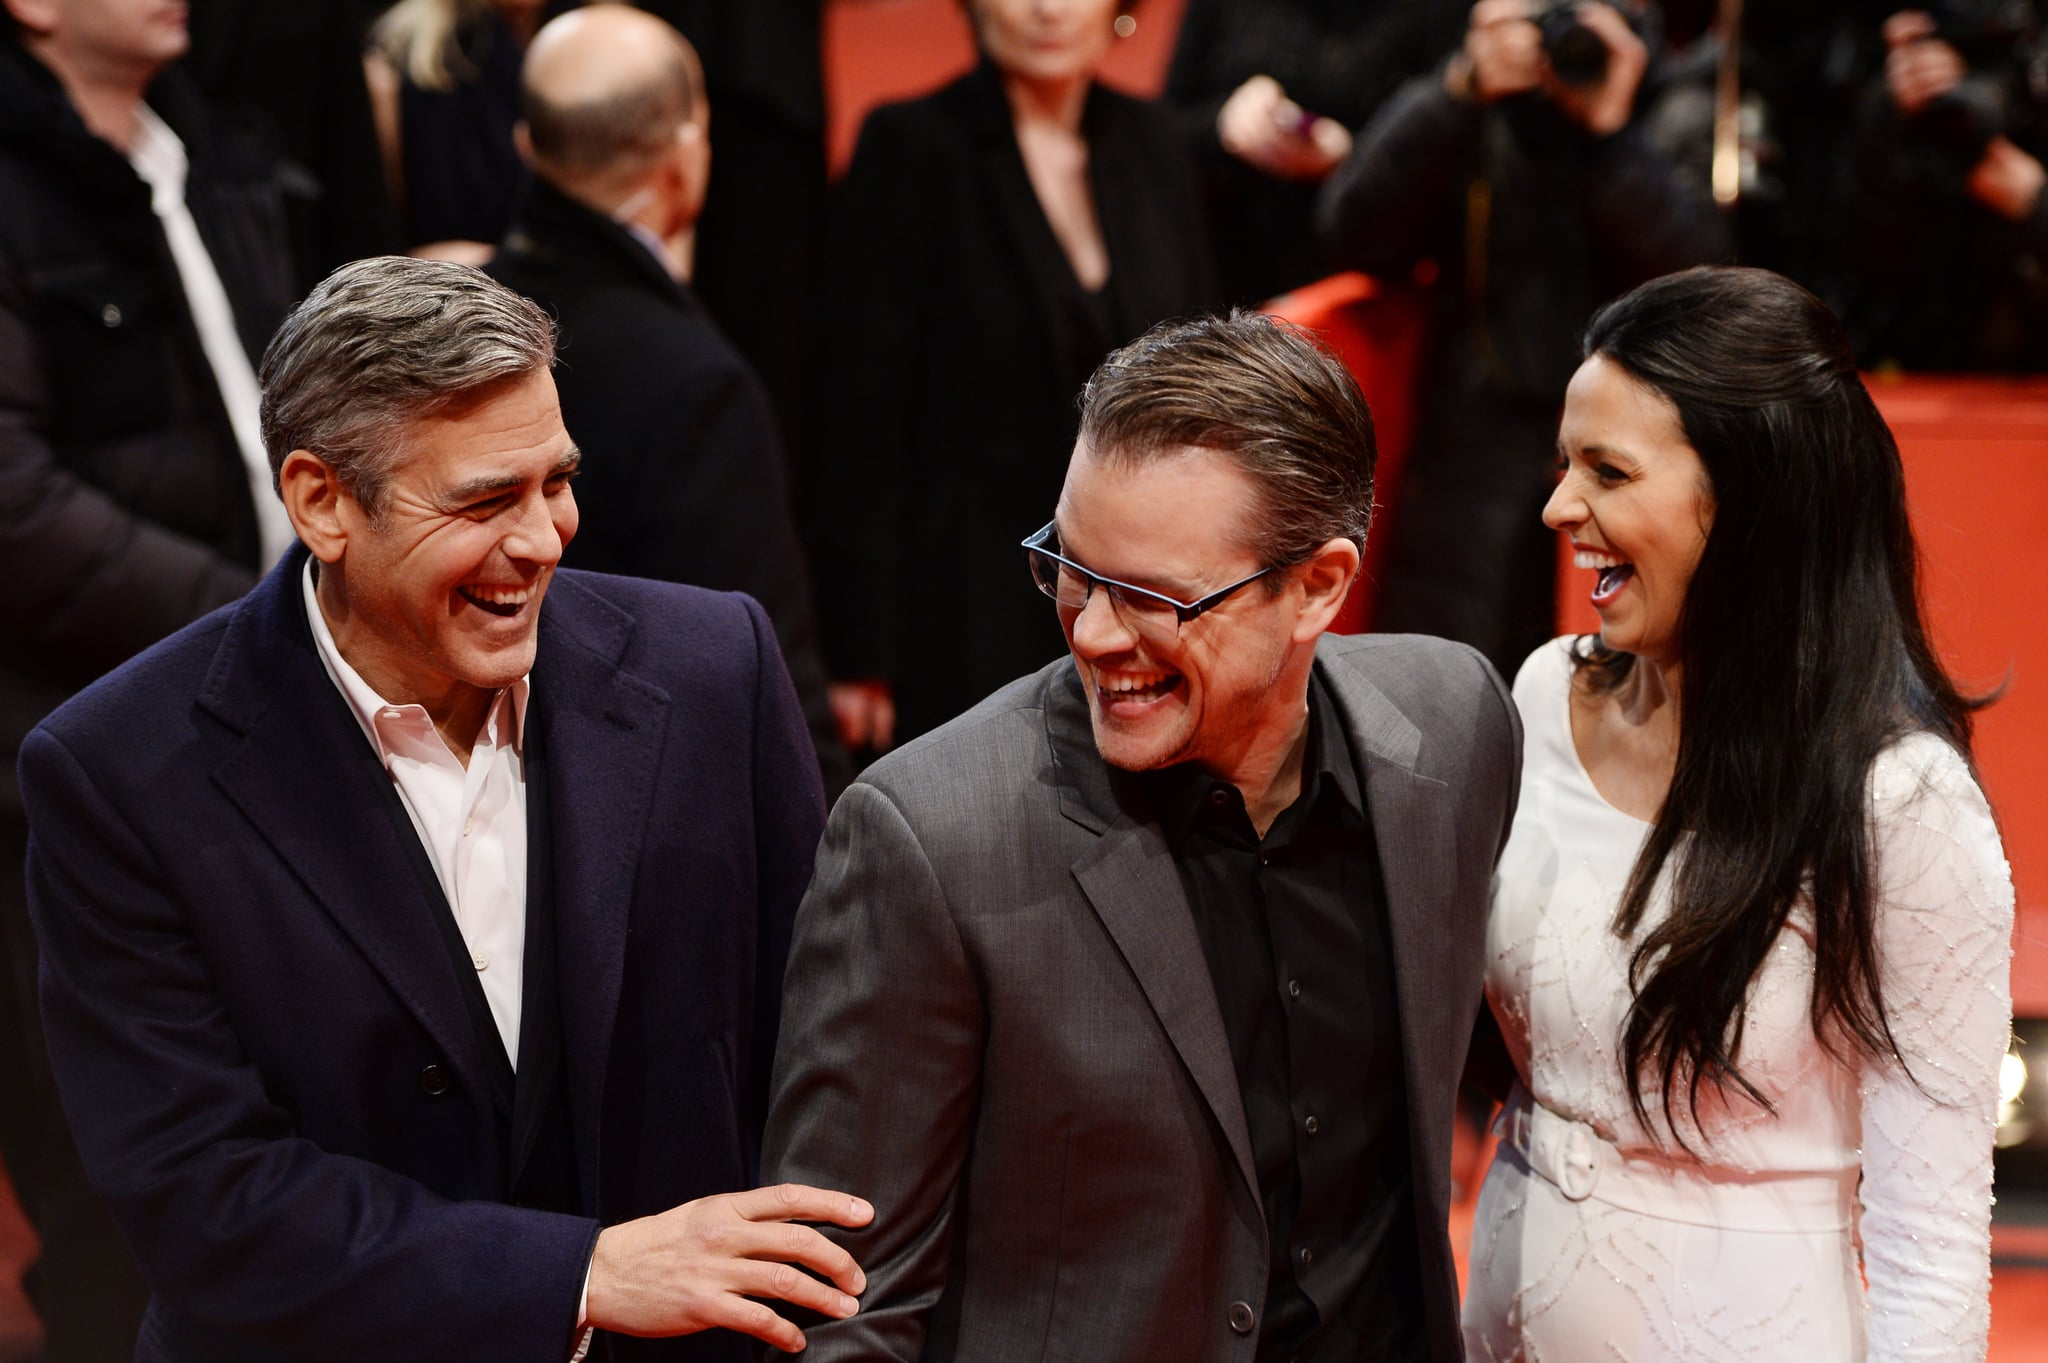 Then he moved on to making Matt laugh on the red carpet. Luciana couldn't resist cracking up either.